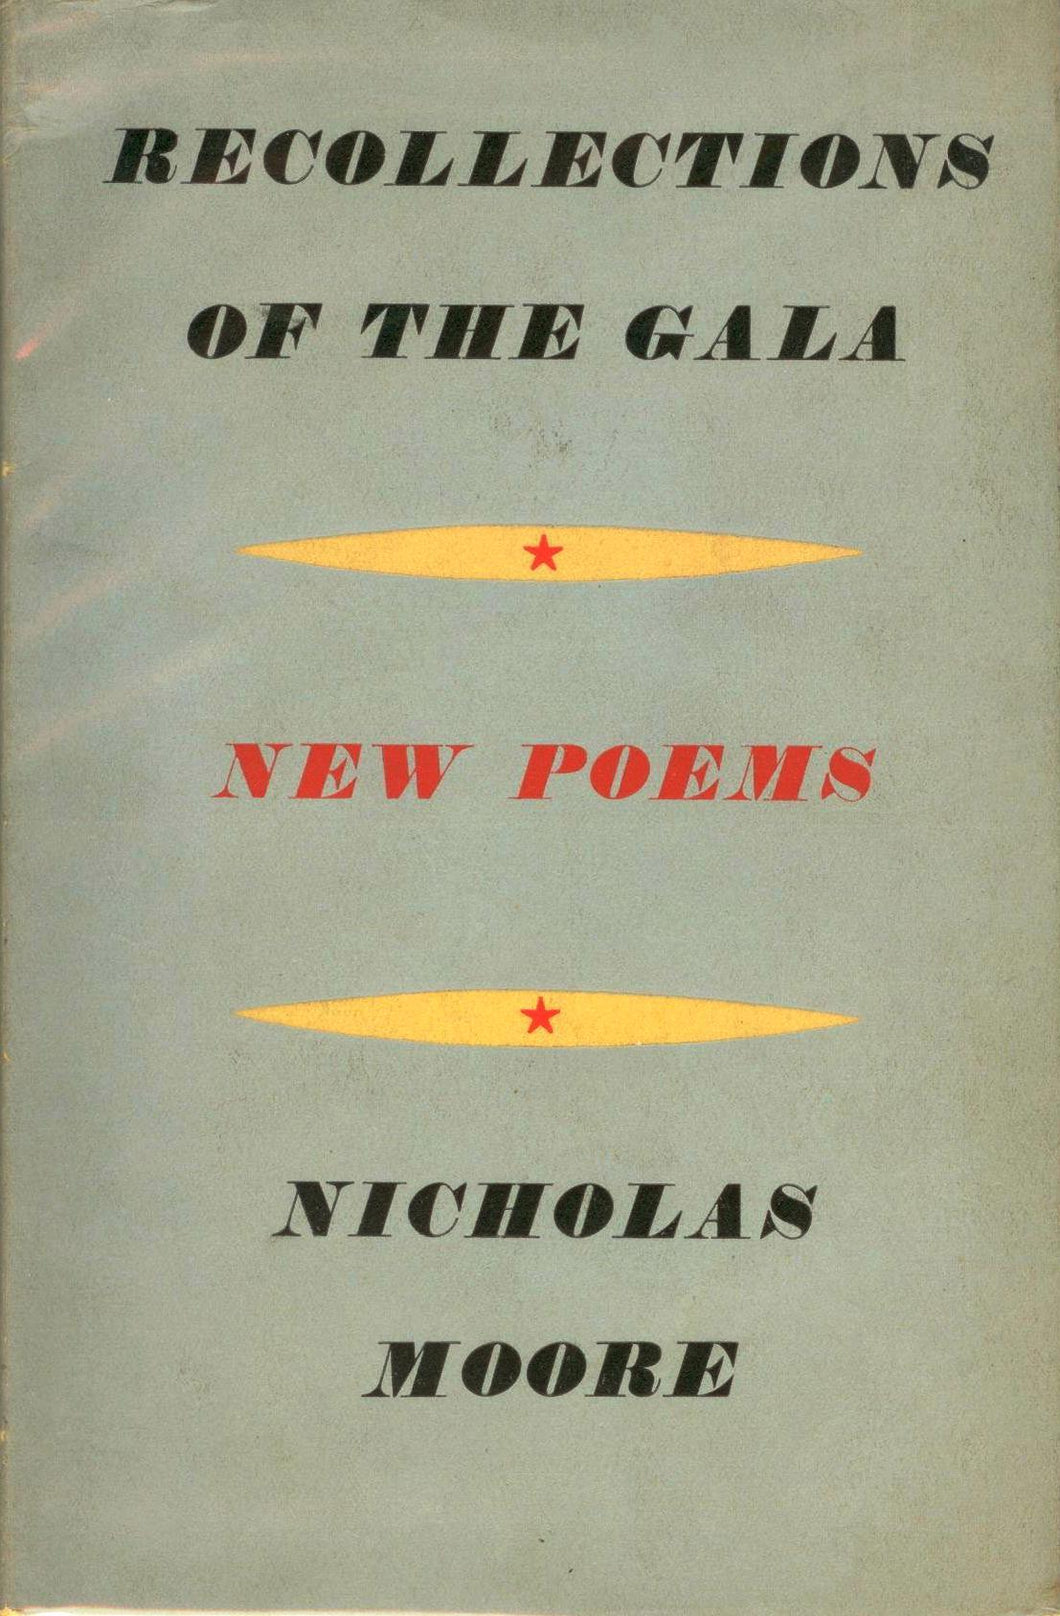 Recollections of the Gala: Selected Poems 1943/1948